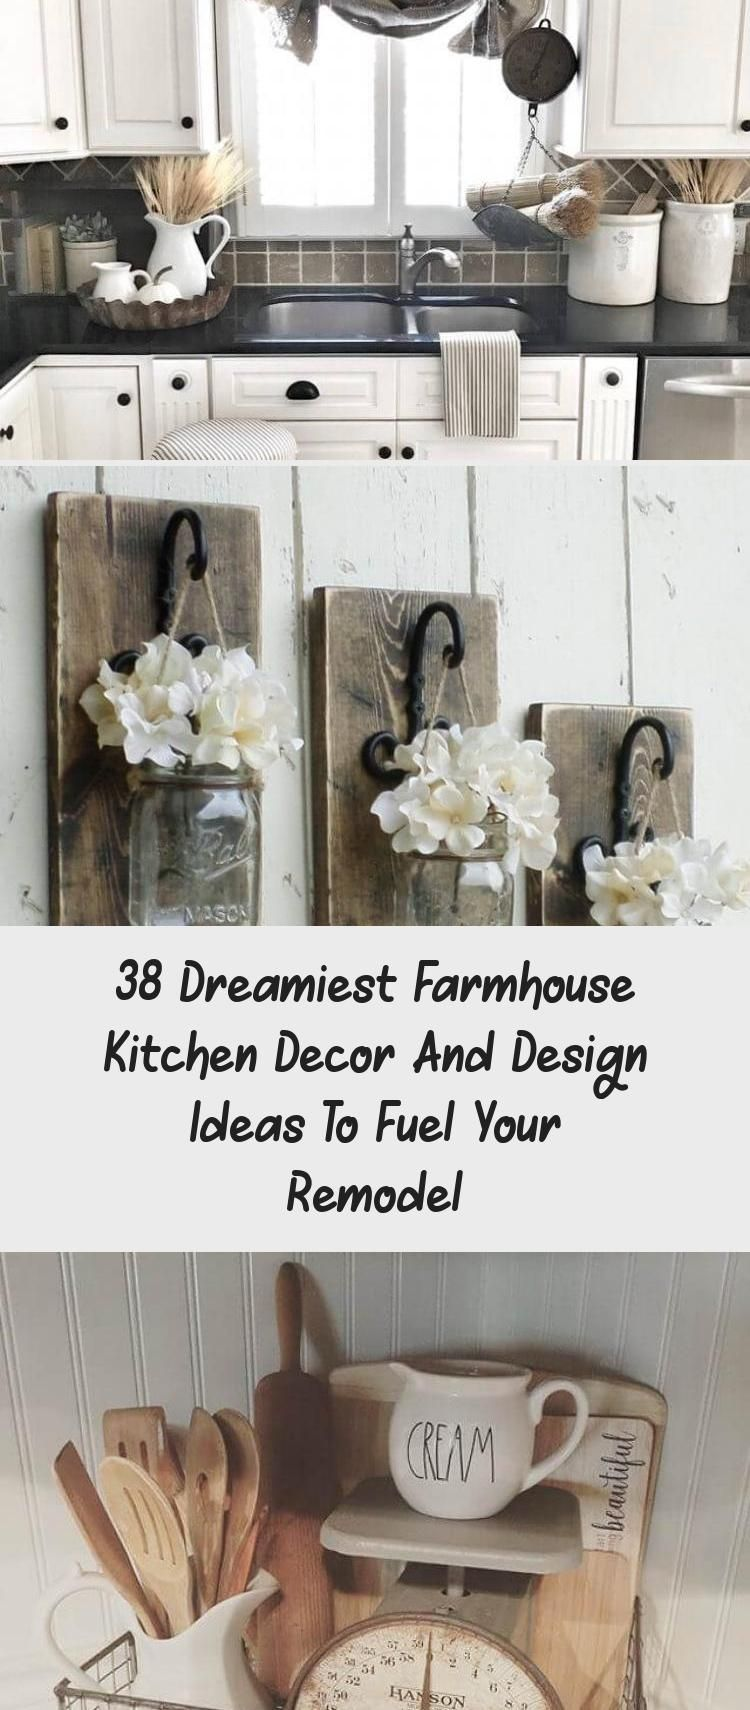 Photo of 38 Dreamiest Farmhouse Kitchen Decor And Design Ideas To Fuel Your Remodel – Decor